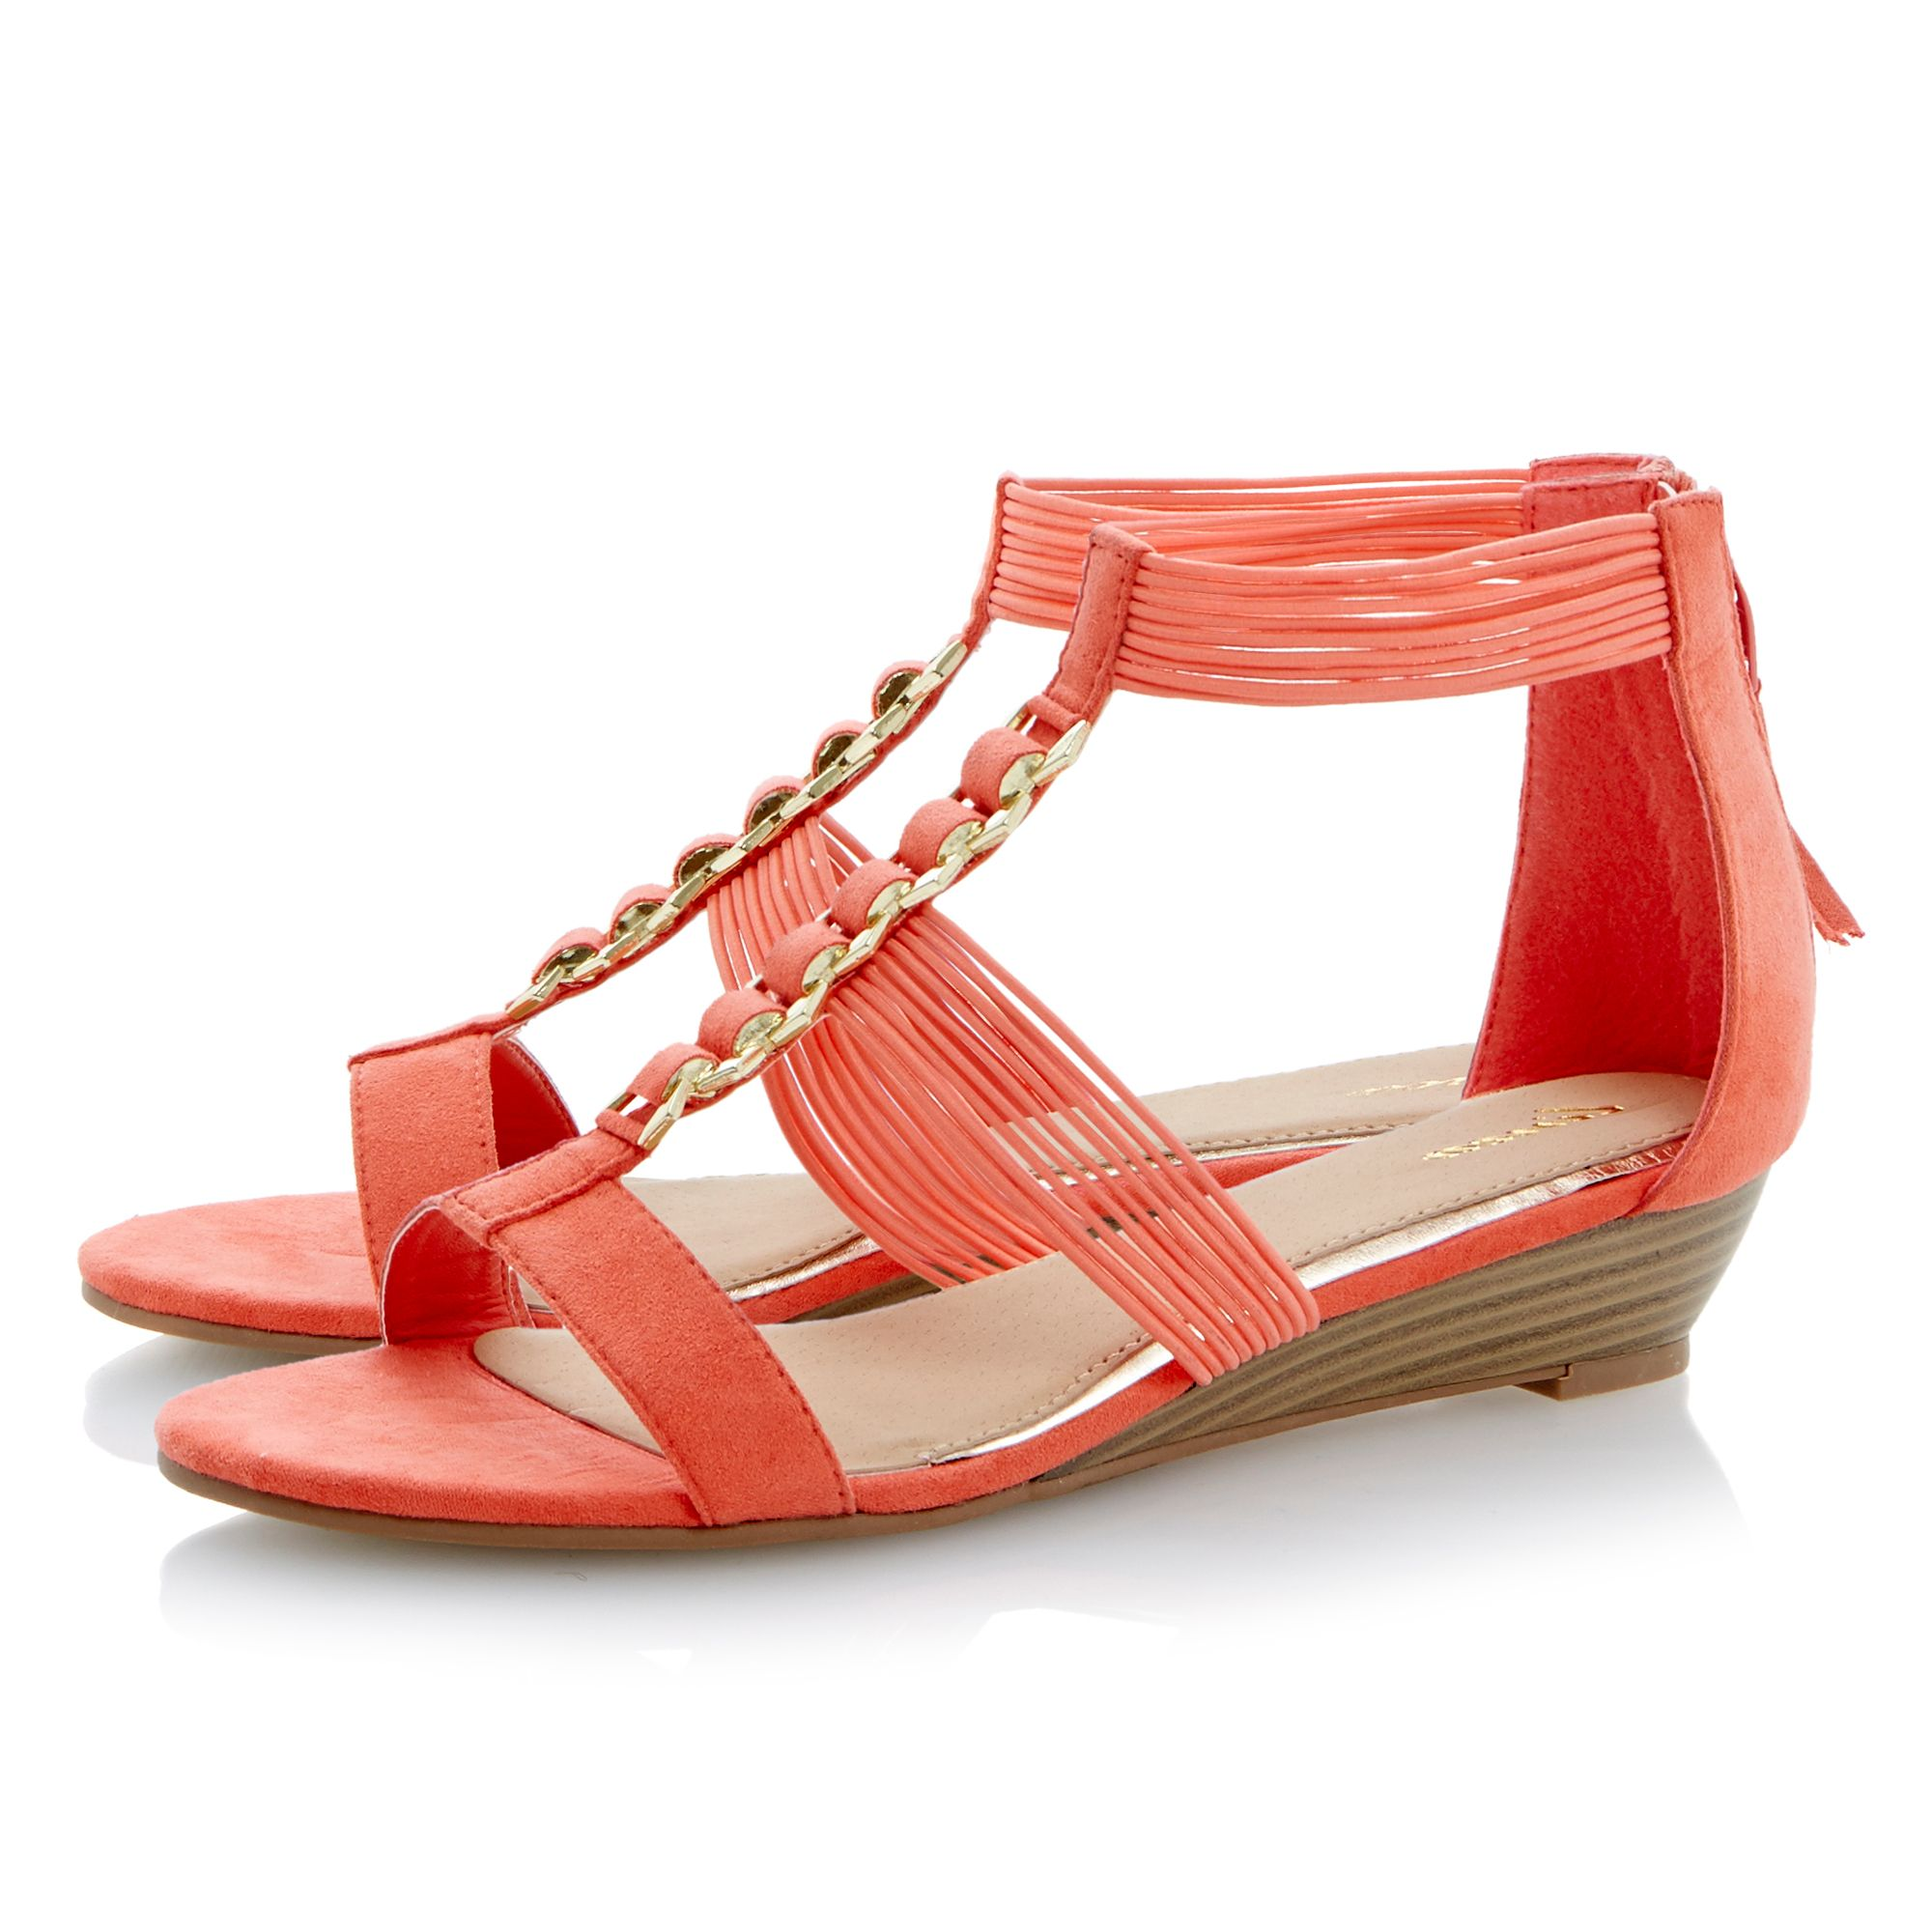 Julienne flat elastic trim wedge sandals